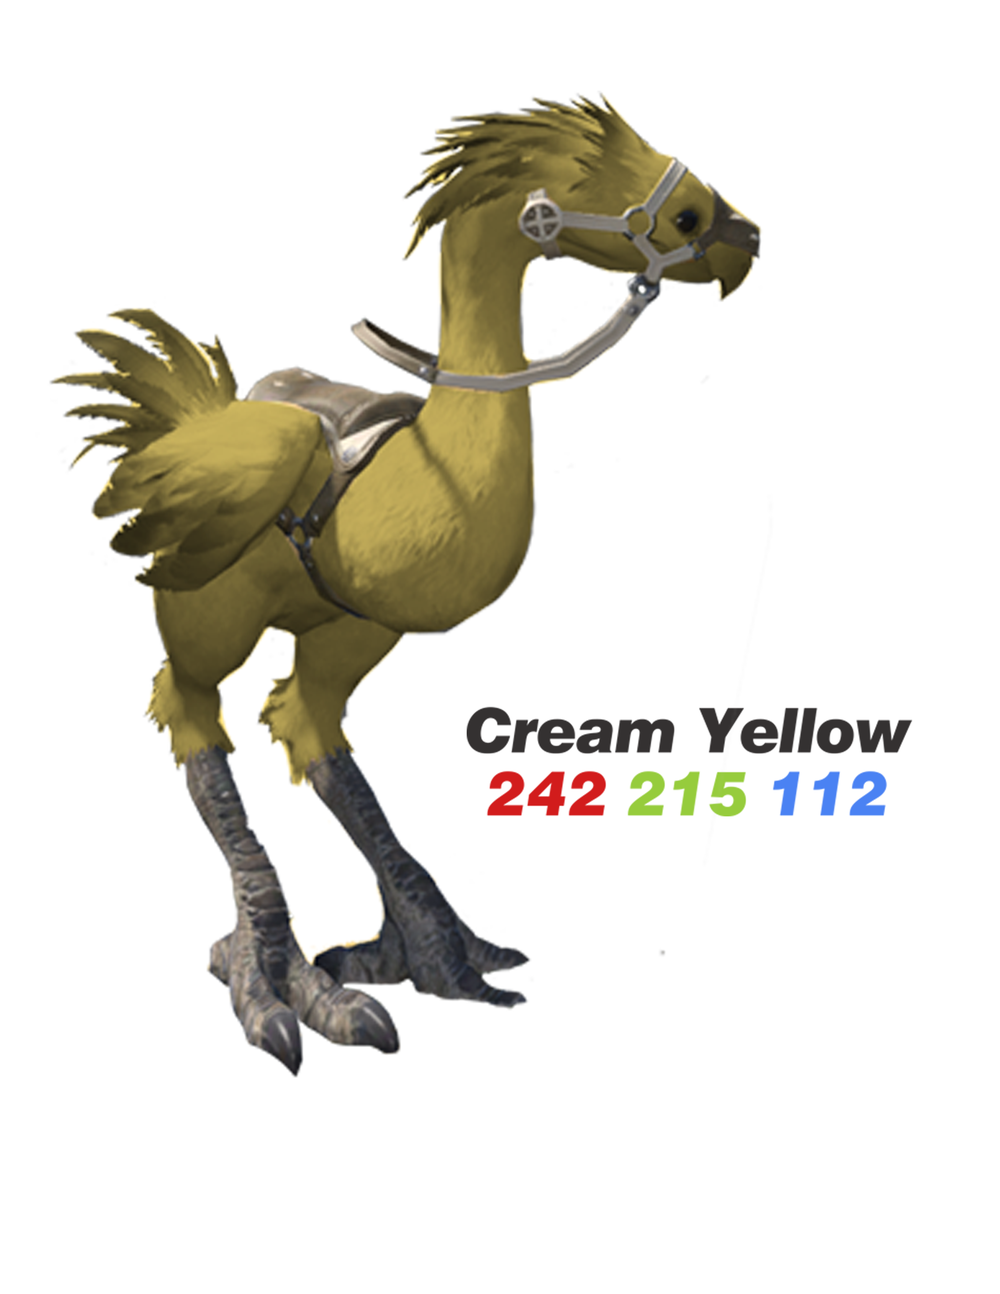 CreamYellow.png